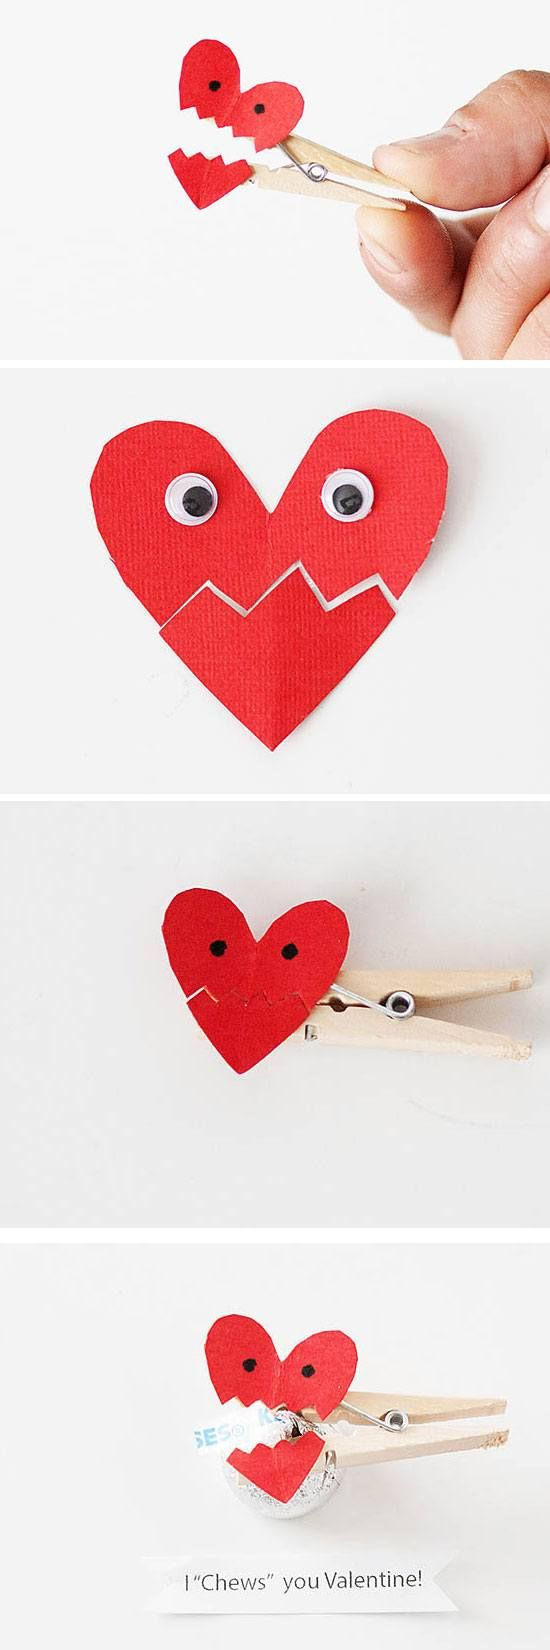 Valentines day gifts i chews you valentine diy for Crafts for kids to make as gifts